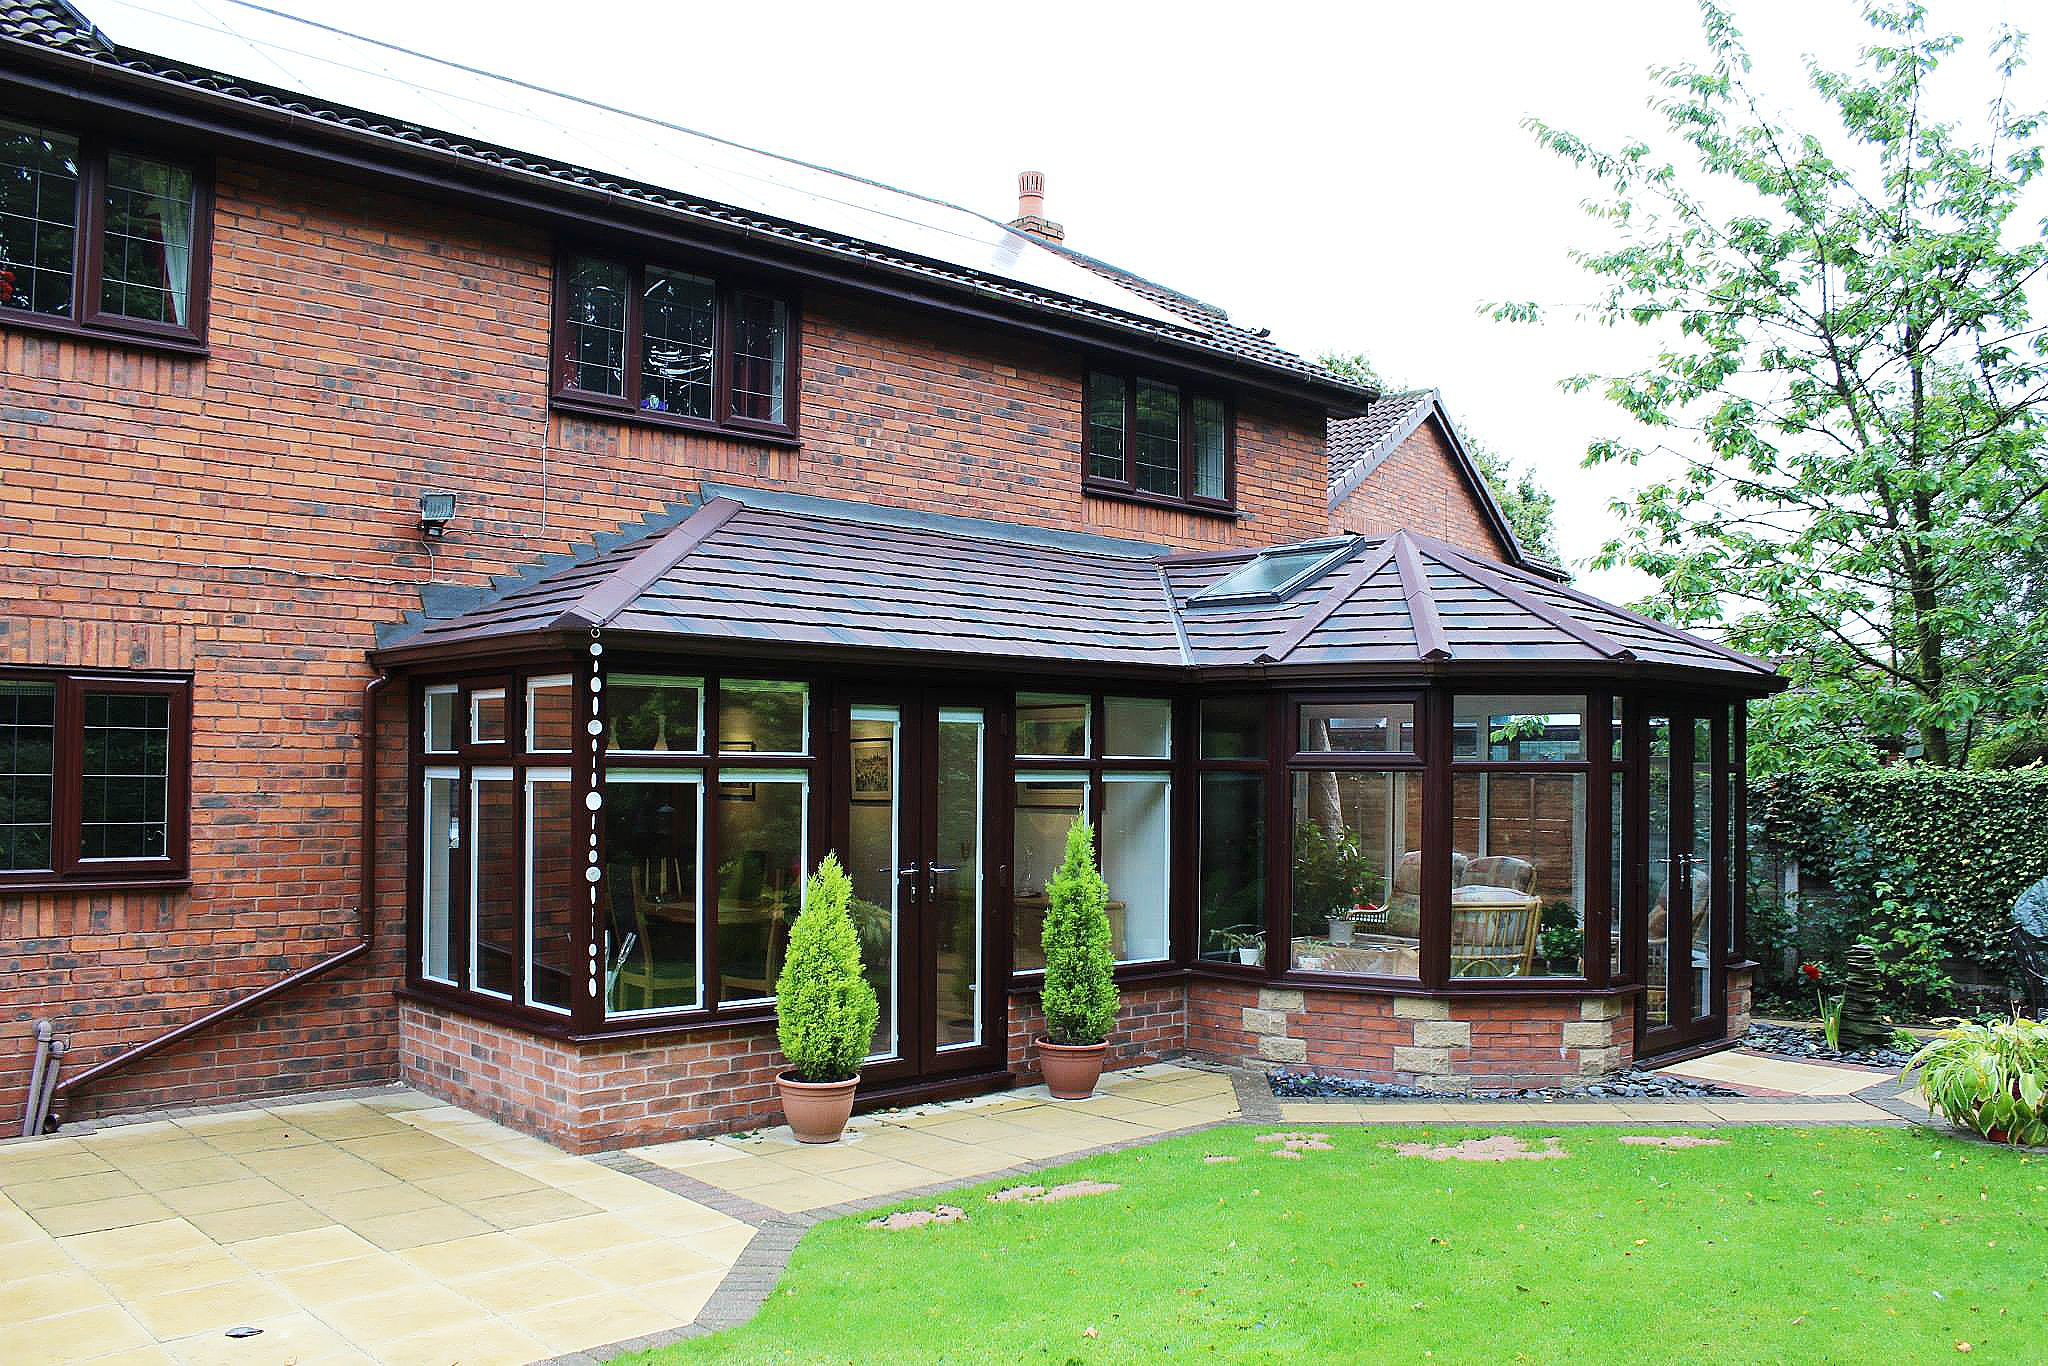 Supalite Roofing A Fantastic Light Weight Solution Offering A Solid Roofing Option To Your Conservatory Not Roofing Options Conservatory Roof Roofing Systems